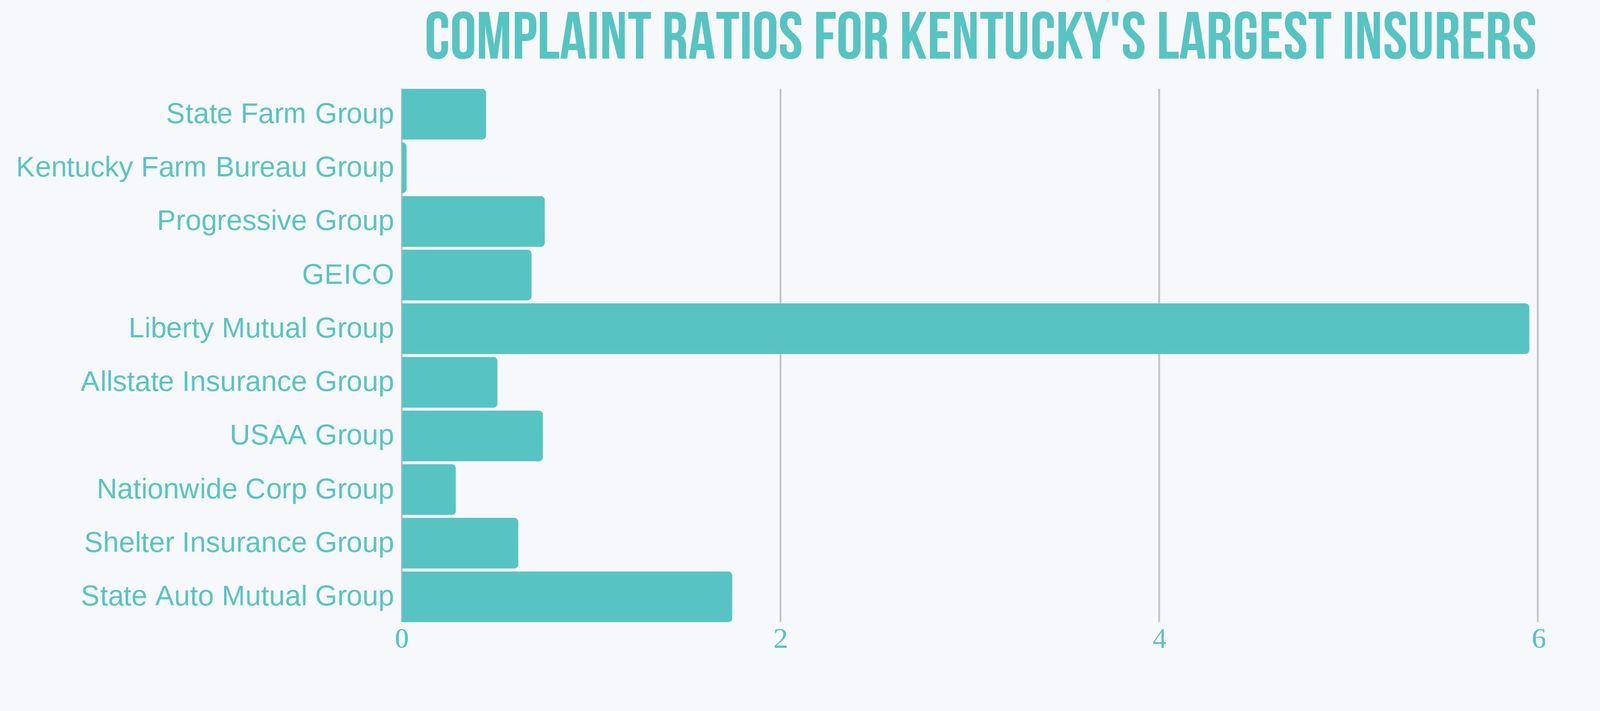 Complaint ratio for Kentucky's largest insurers